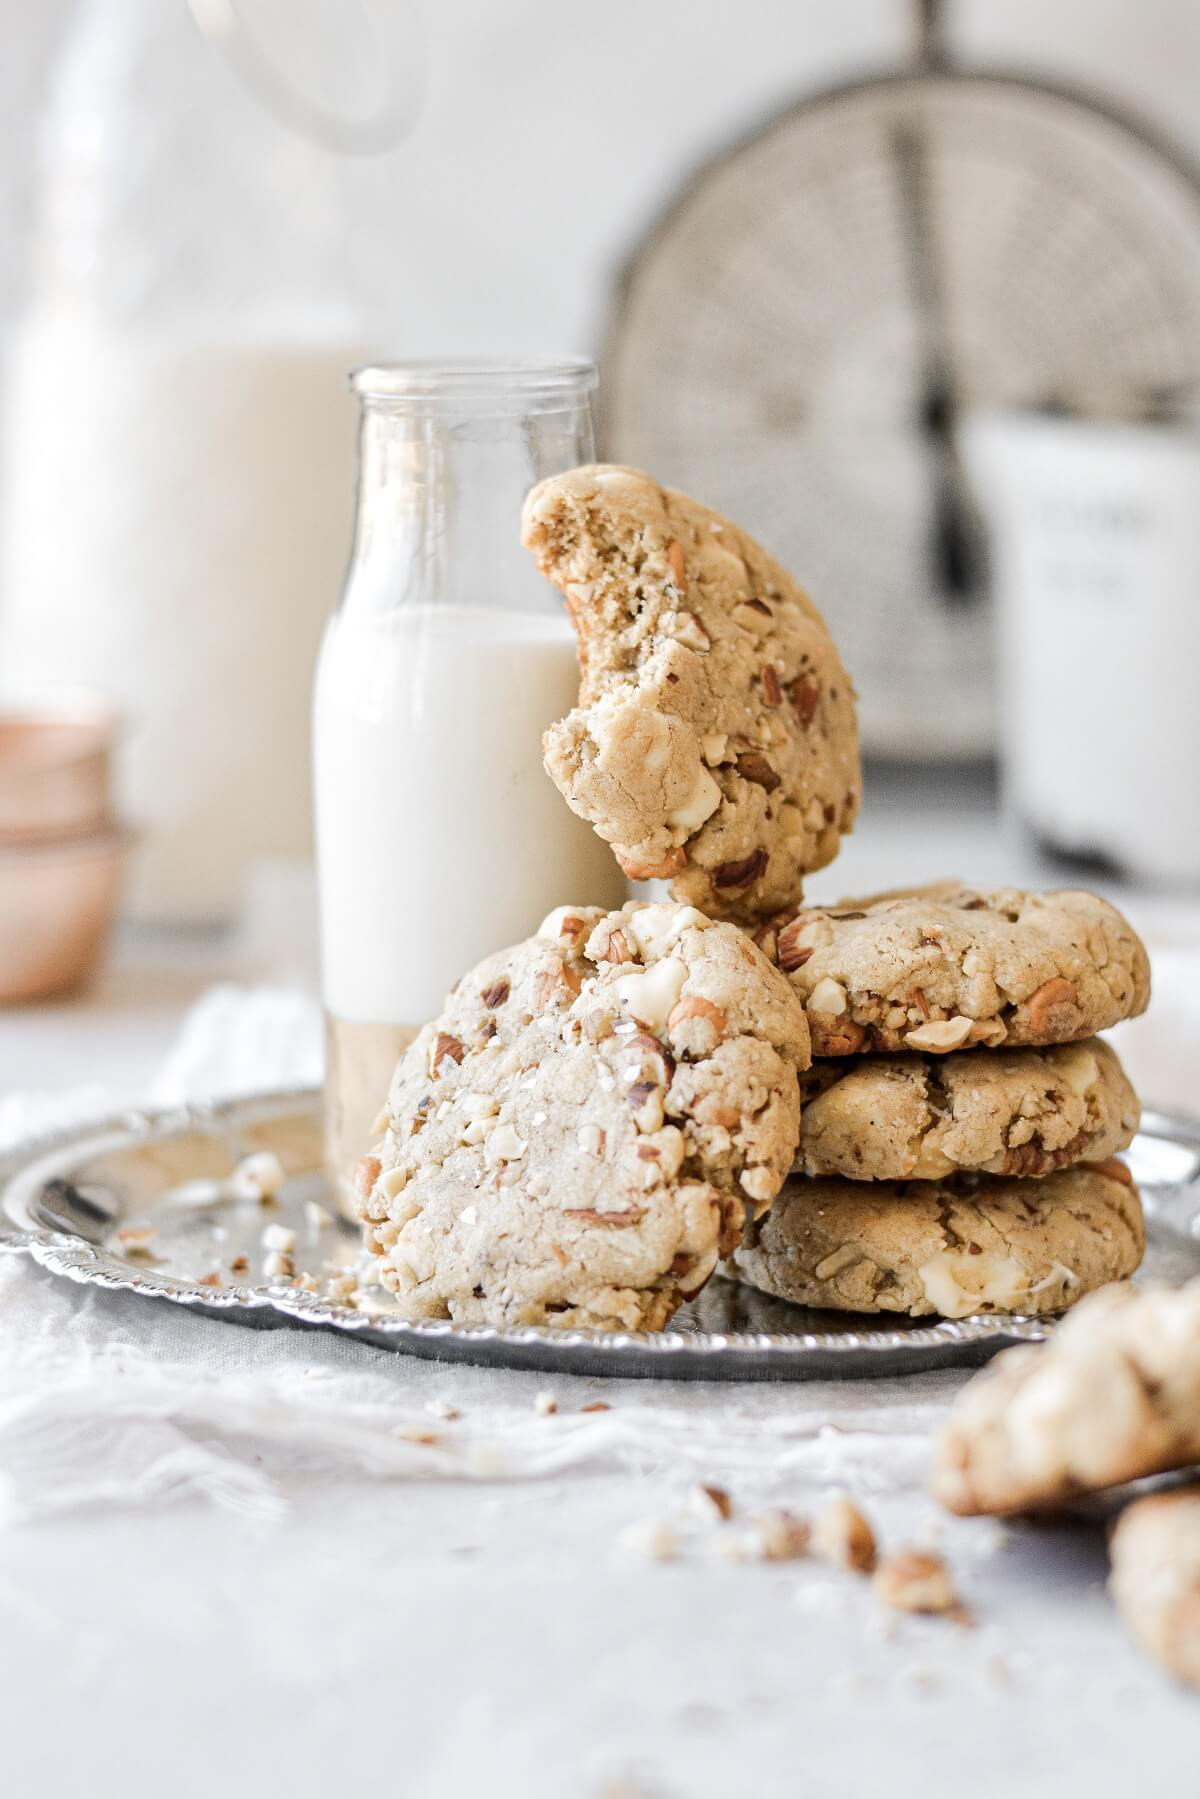 A stack of nutty chocolate chip cookies, one with a bite taken, next to a jar of milk.